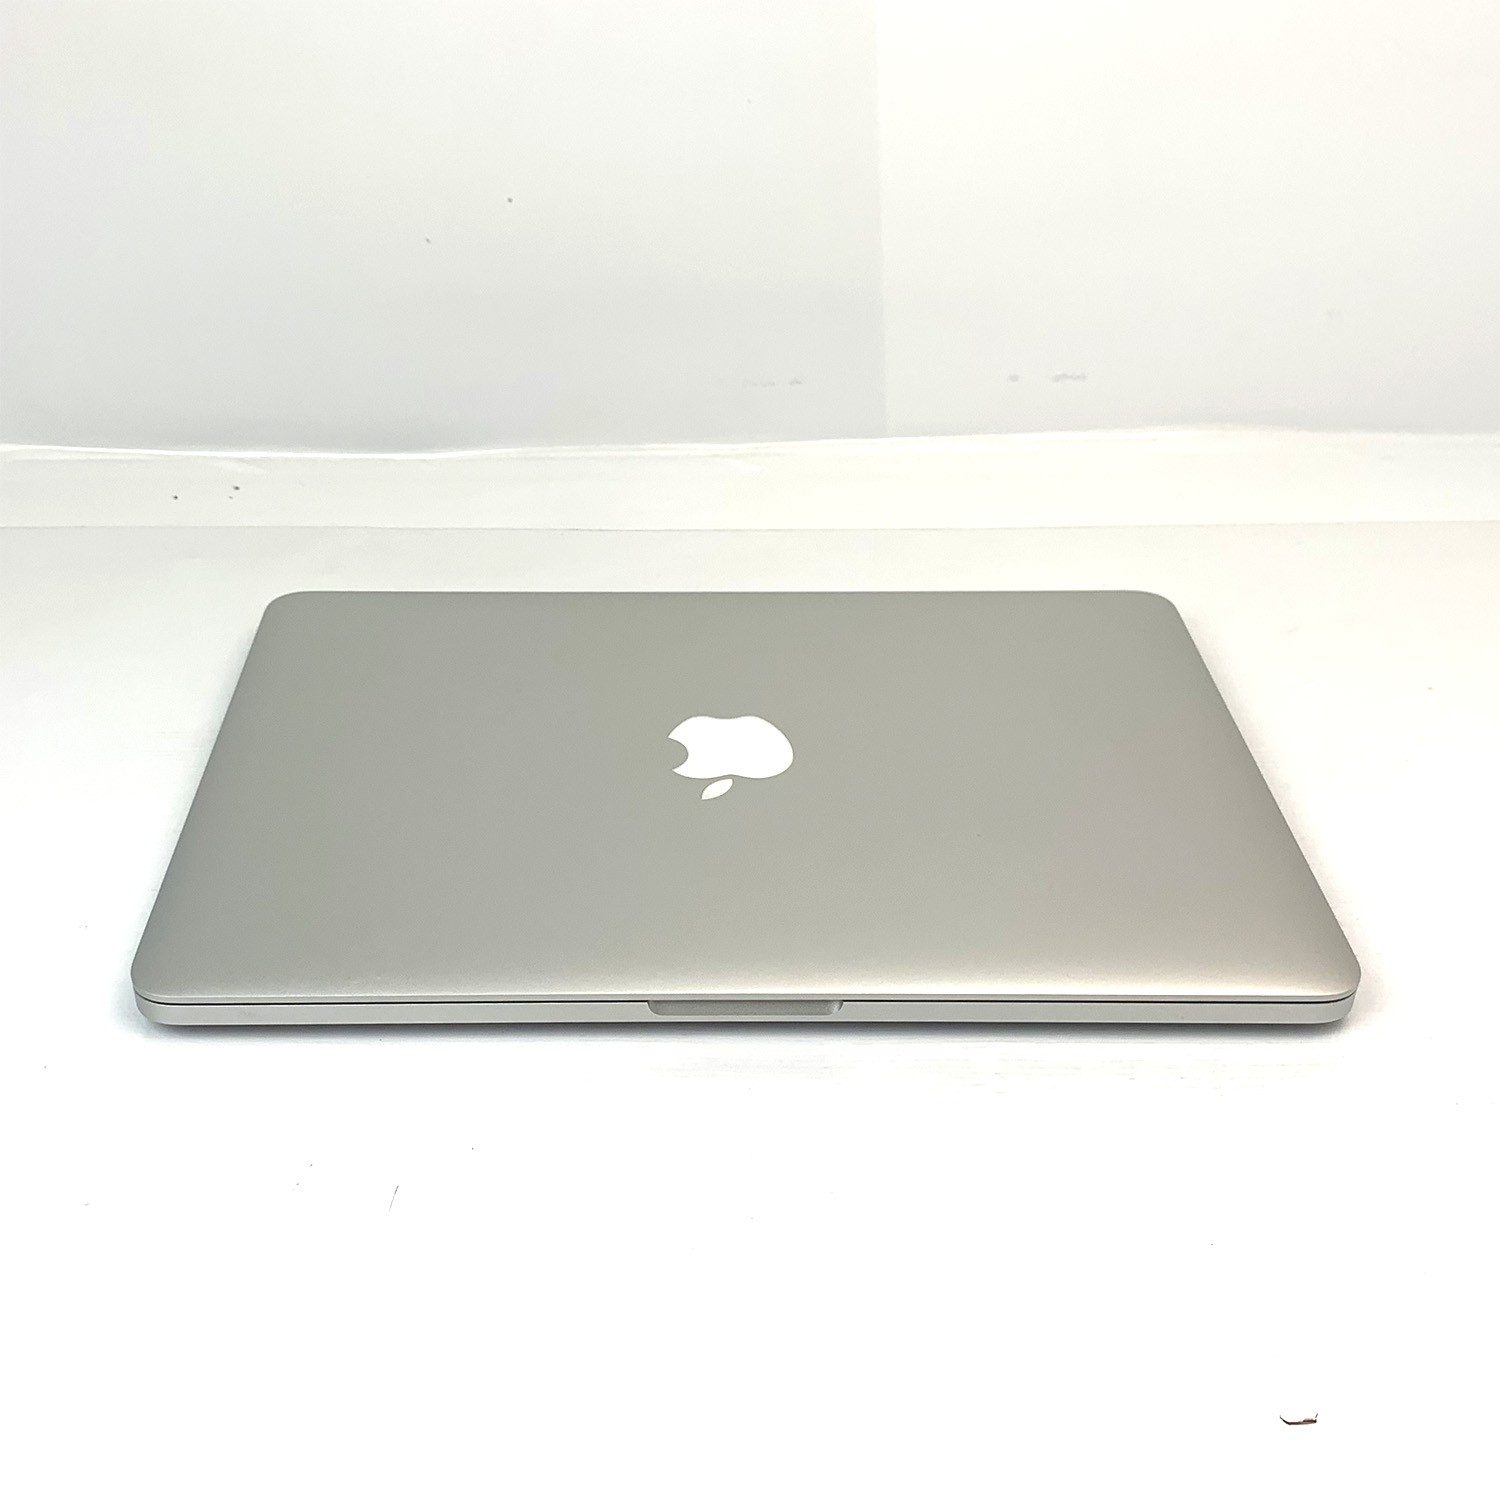 Macbook Pro Retina 13 i5 2.7Ghz 8GB 256GB SSD MF839LL/A Seminovo